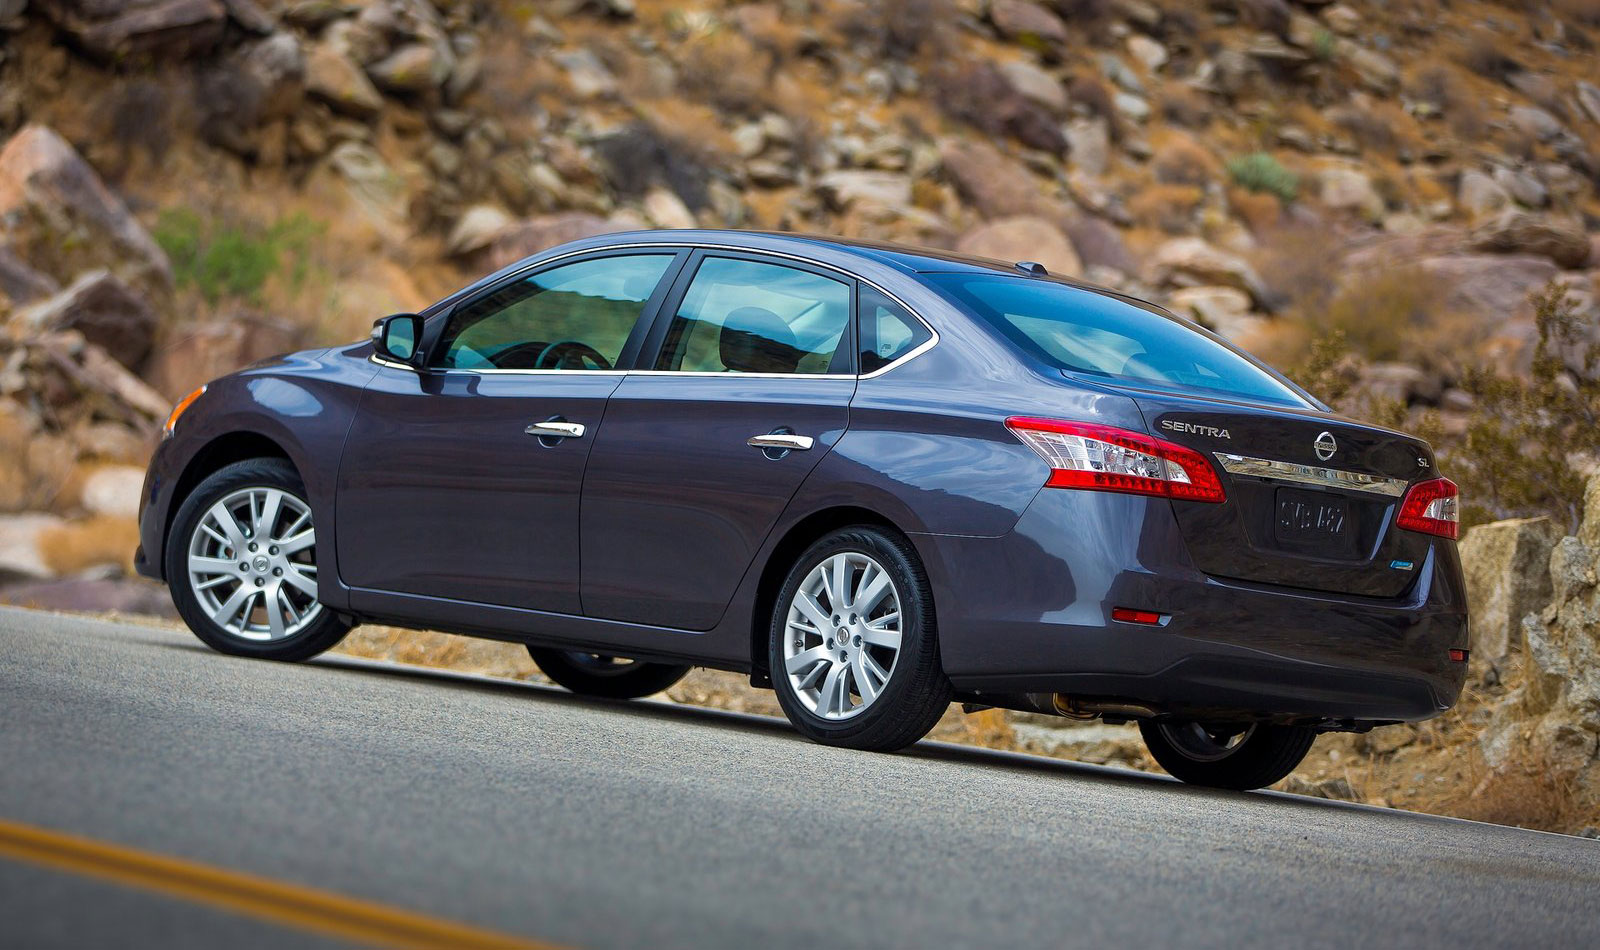 2018 Nissan Sylphy >> New Nissan Sylphy is the 2013 Nissan Sentra in USA Image 128578